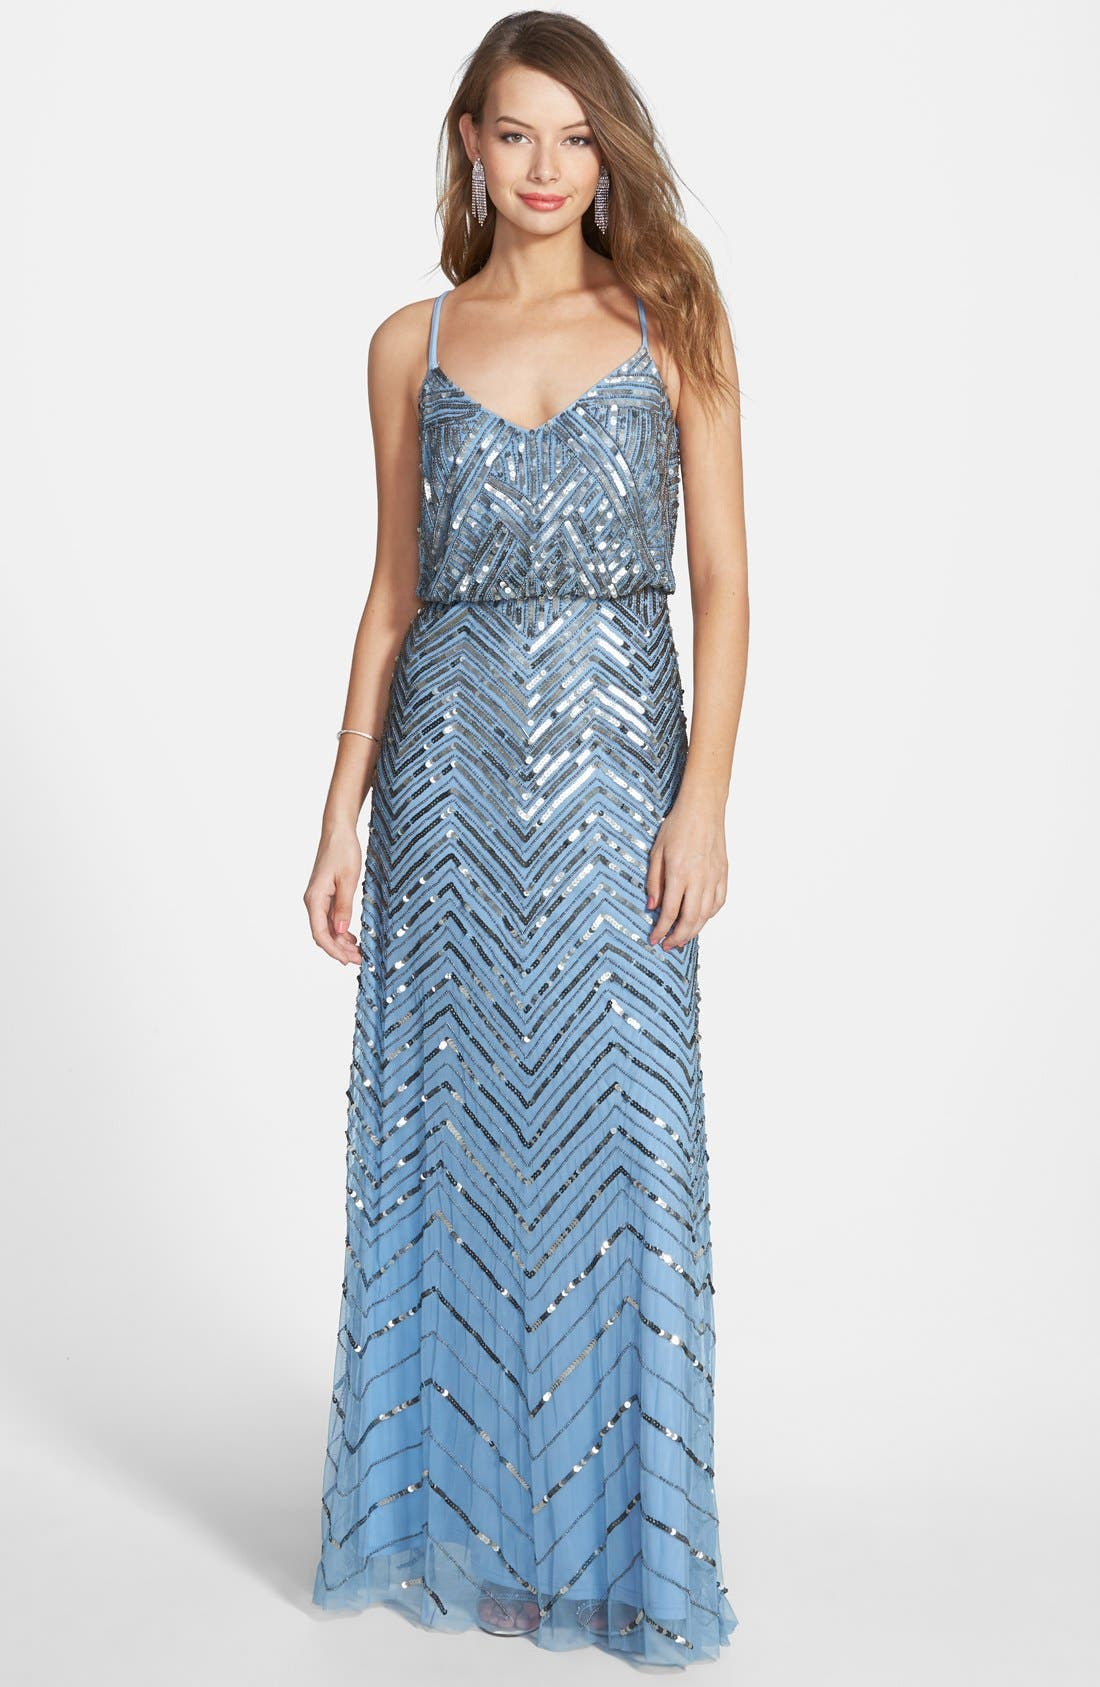 Main Image - Adrianna Papell Cross Back Sequin Blouson Gown